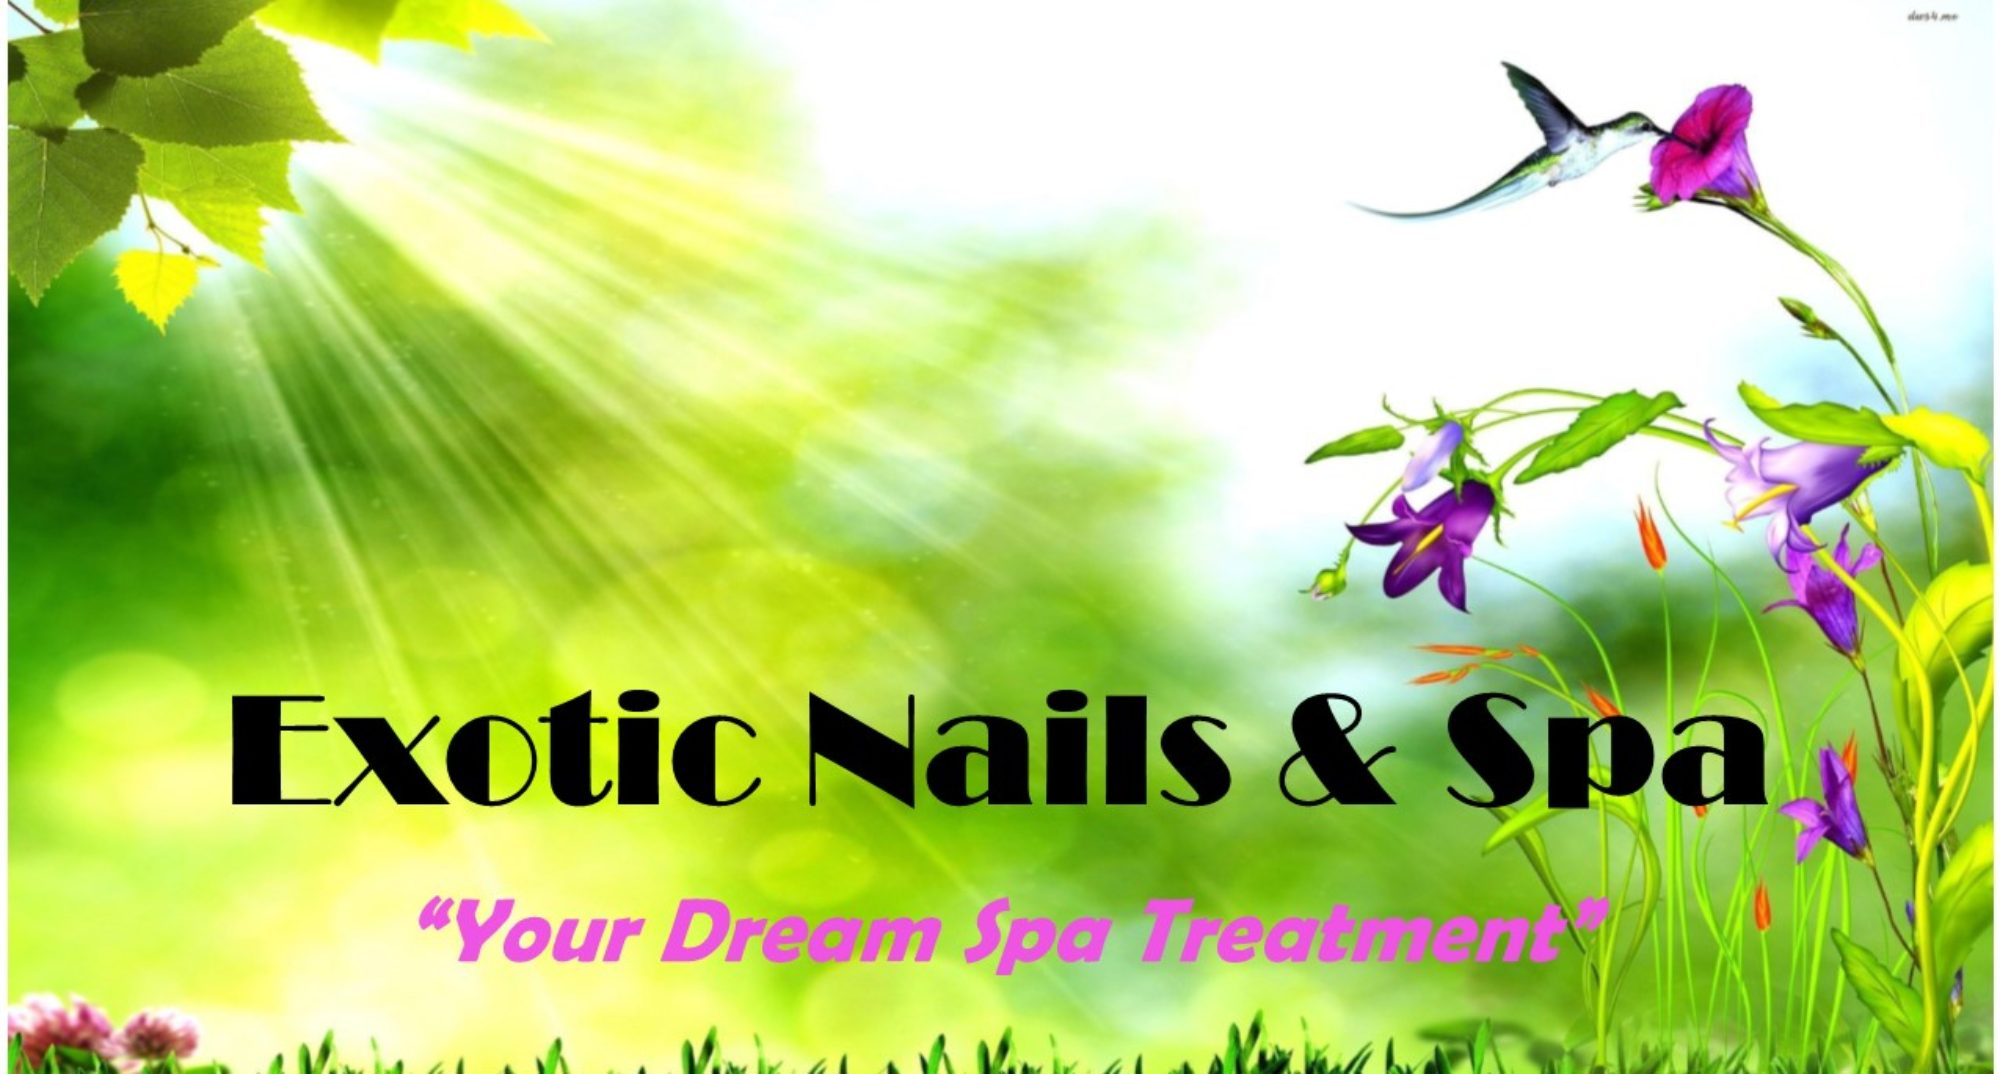 Exotic Nails & Spa – Your Dream Spa Treatment